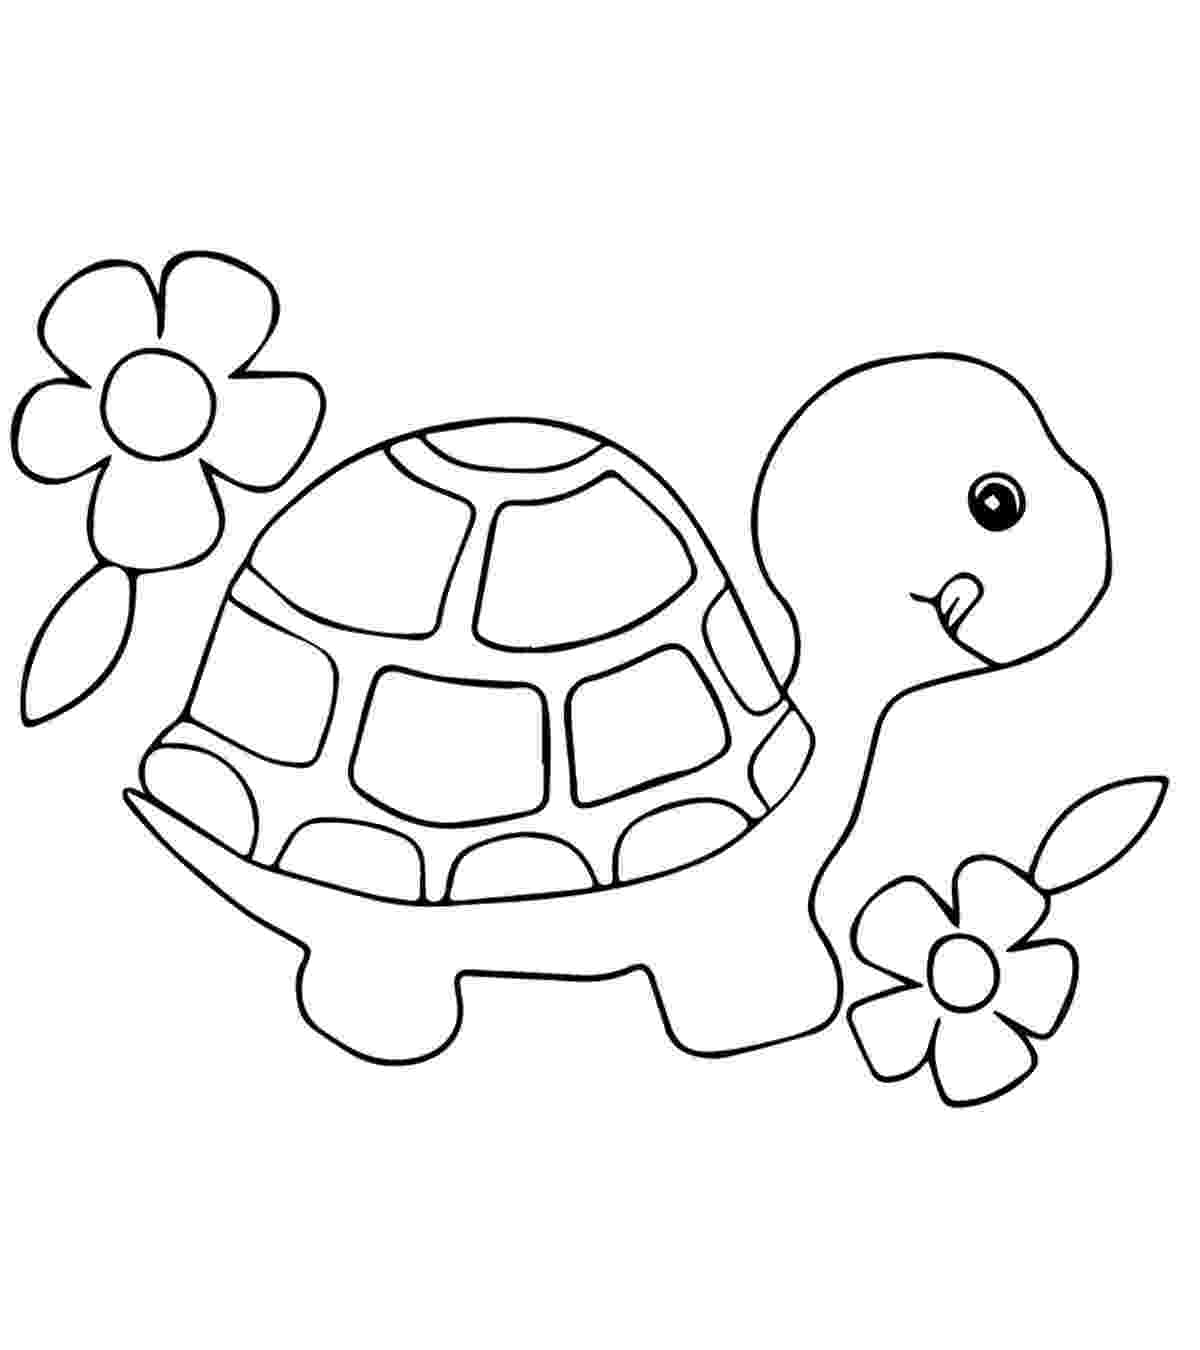 coloring page of turtle animal coloring pages momjunction coloring turtle page of